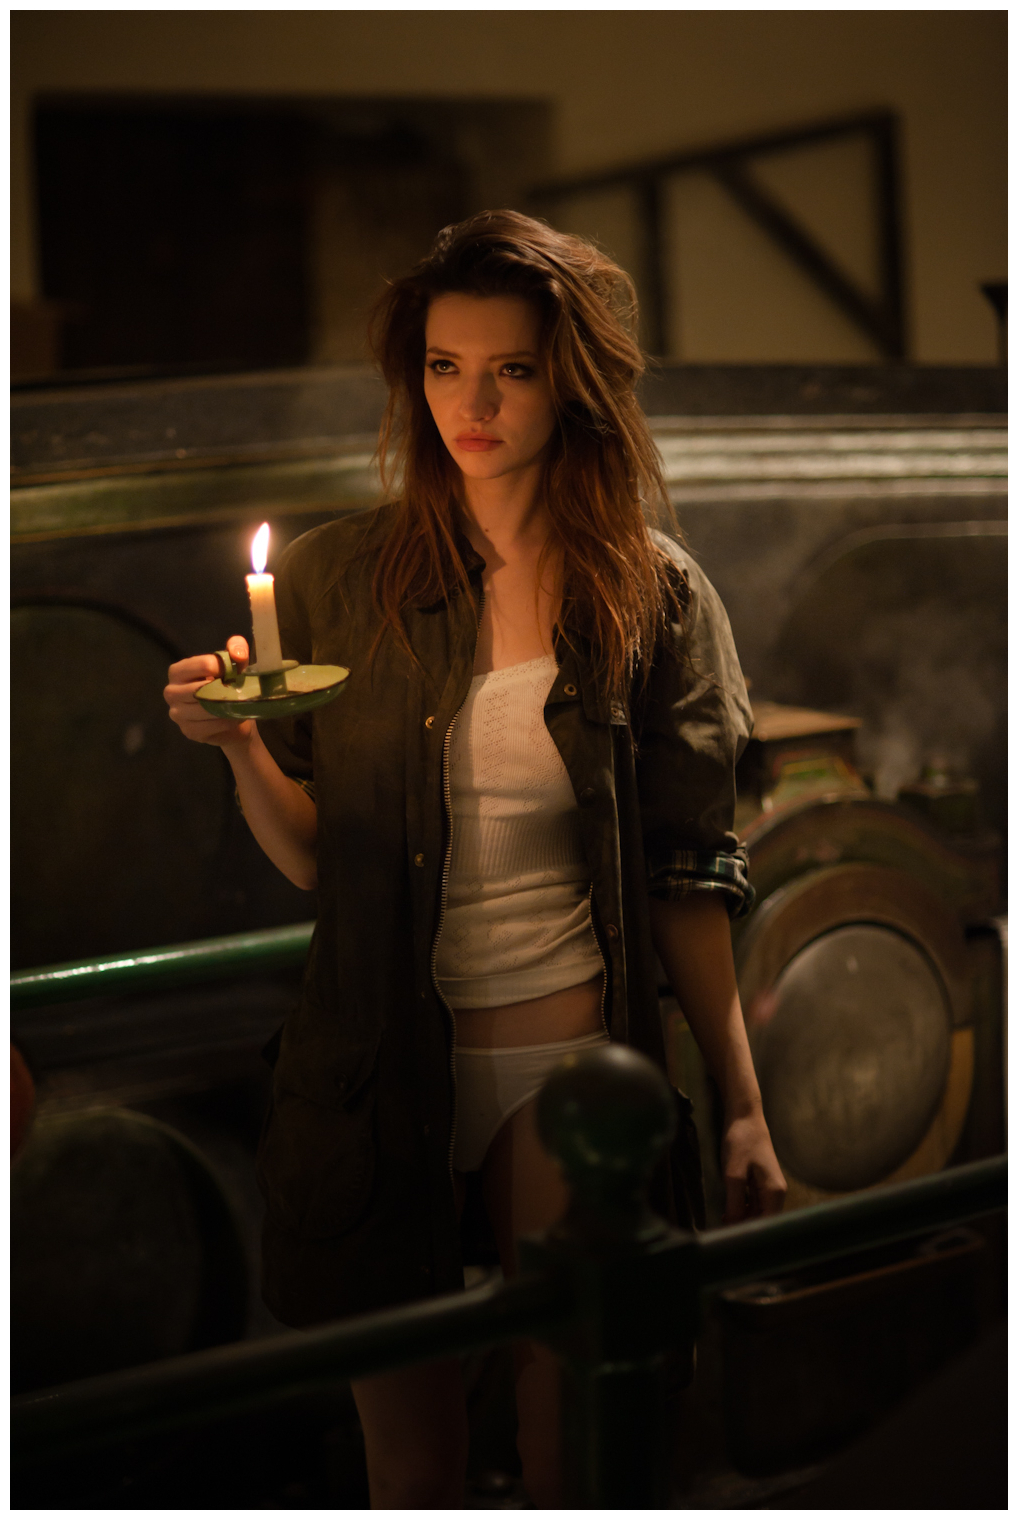 Talulah Riley in The Liability (2012)